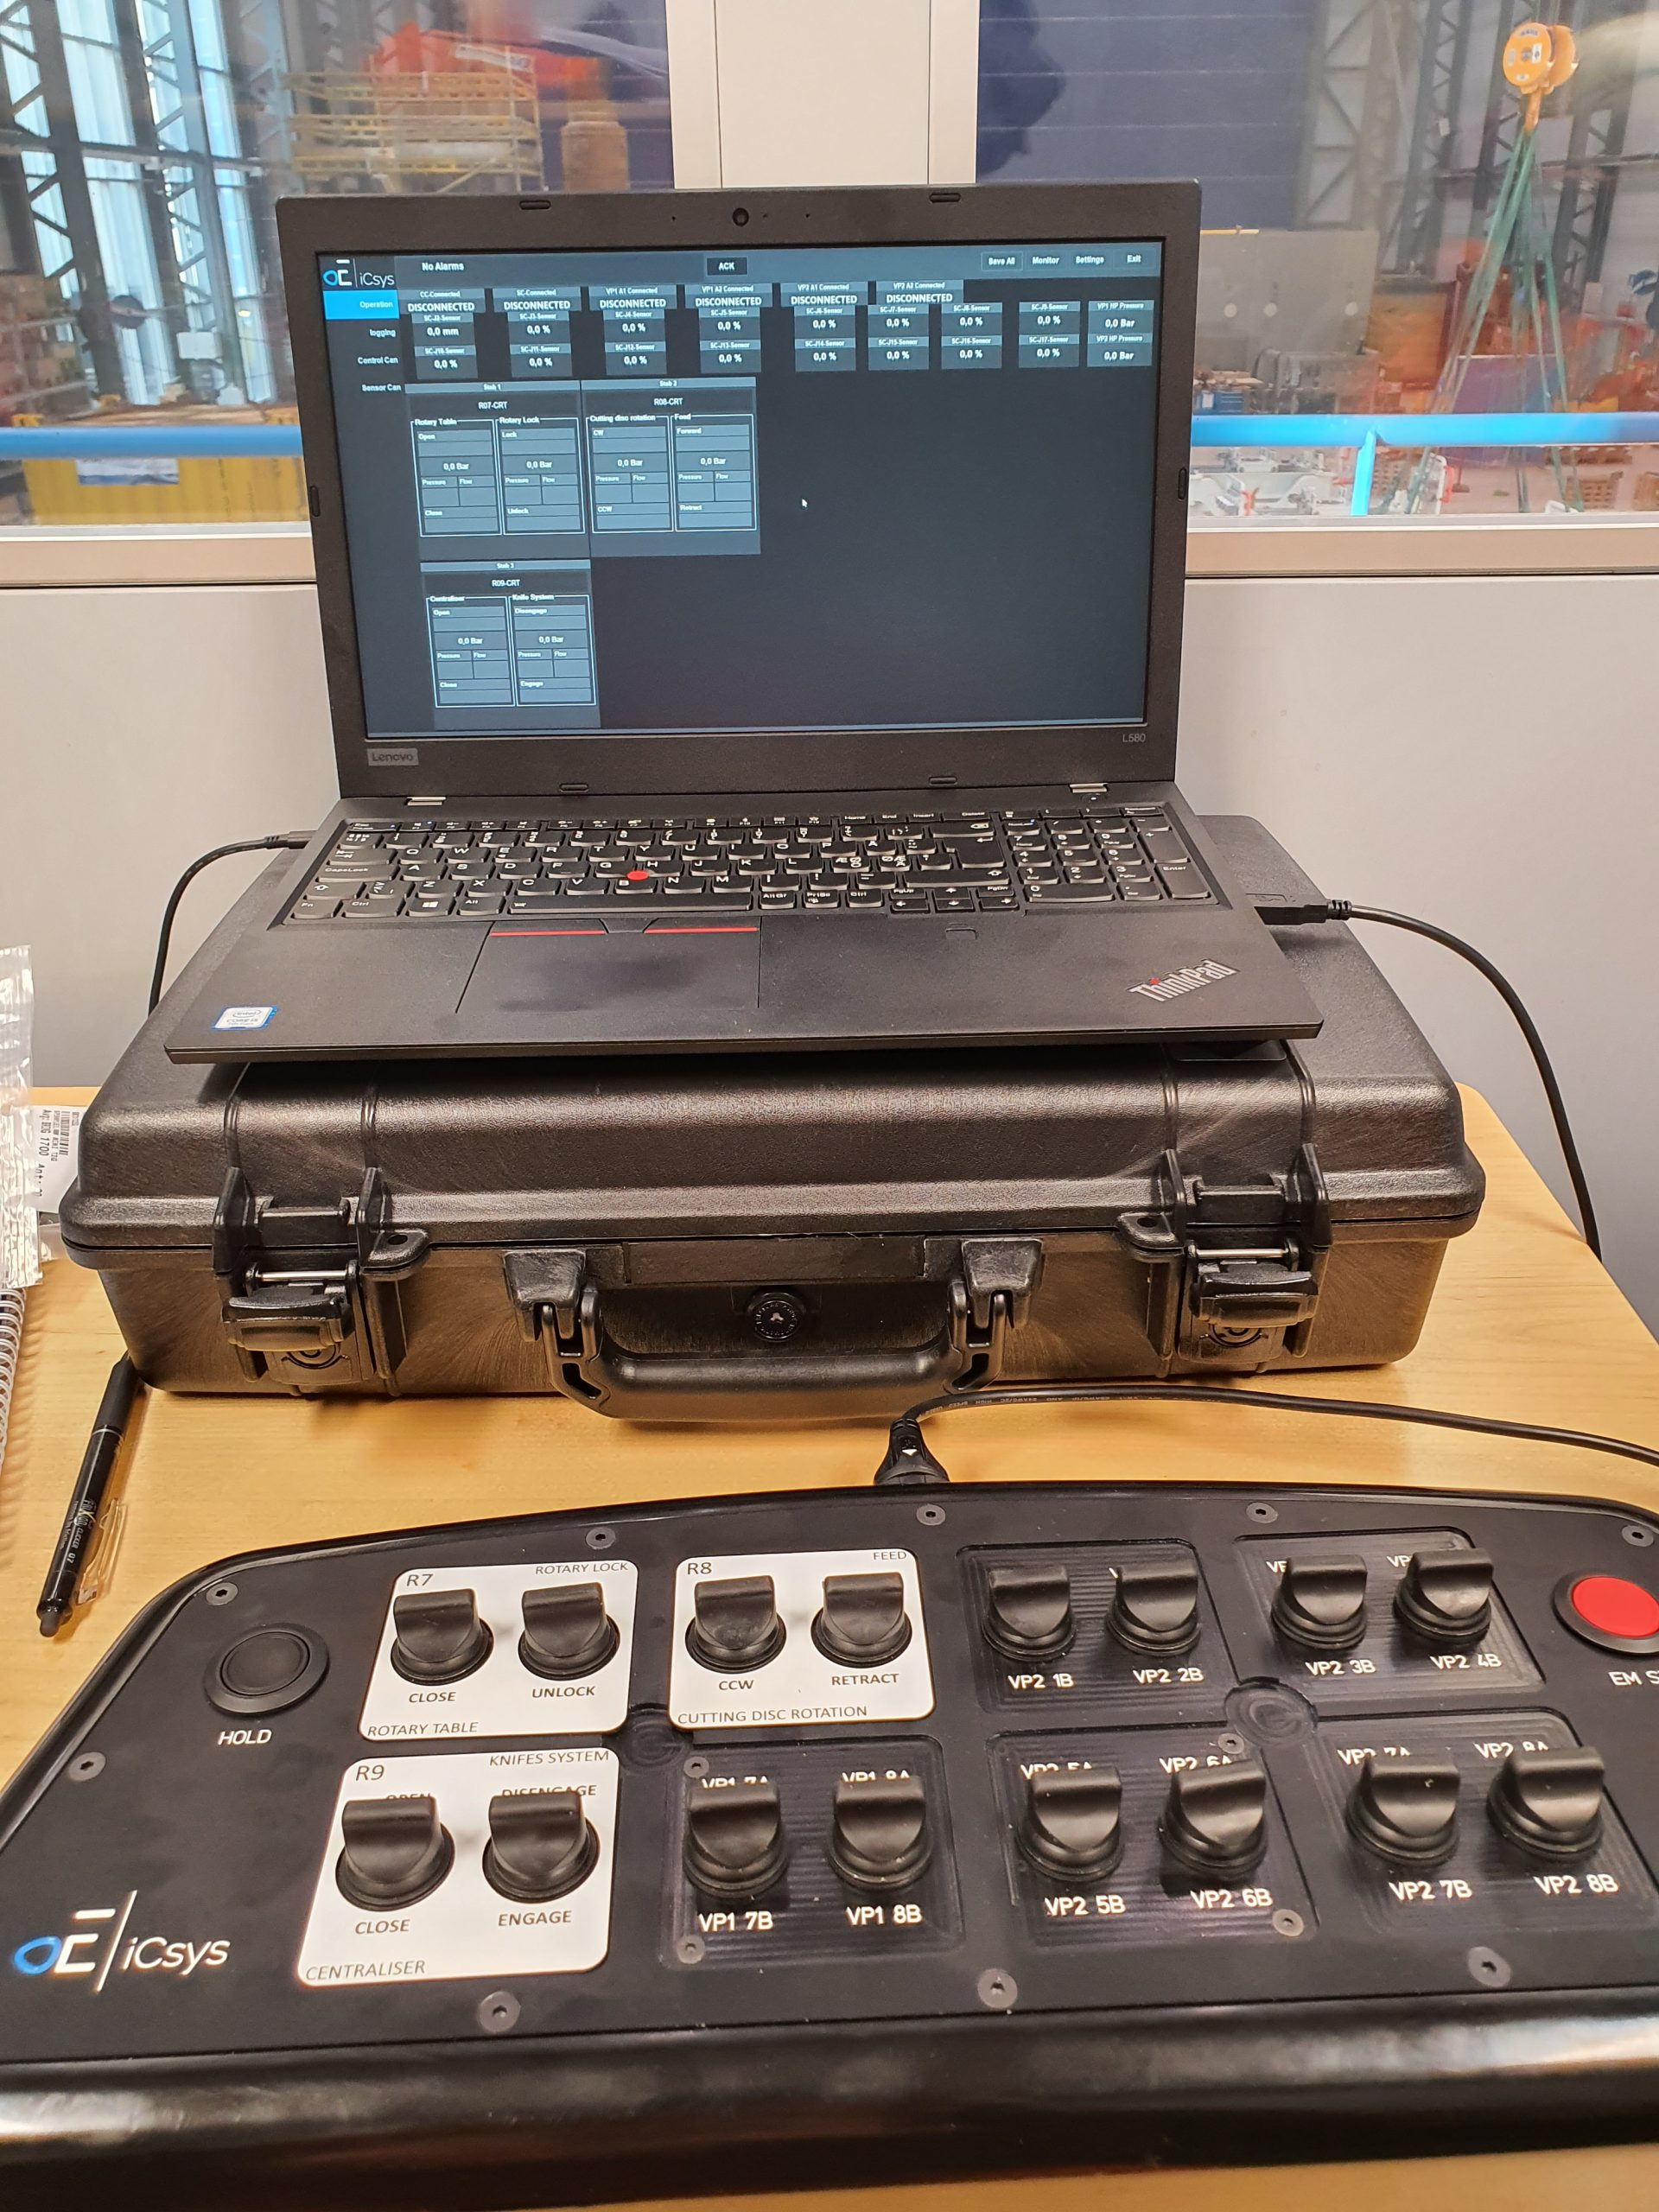 Subsea control system for ROV skid and backpack